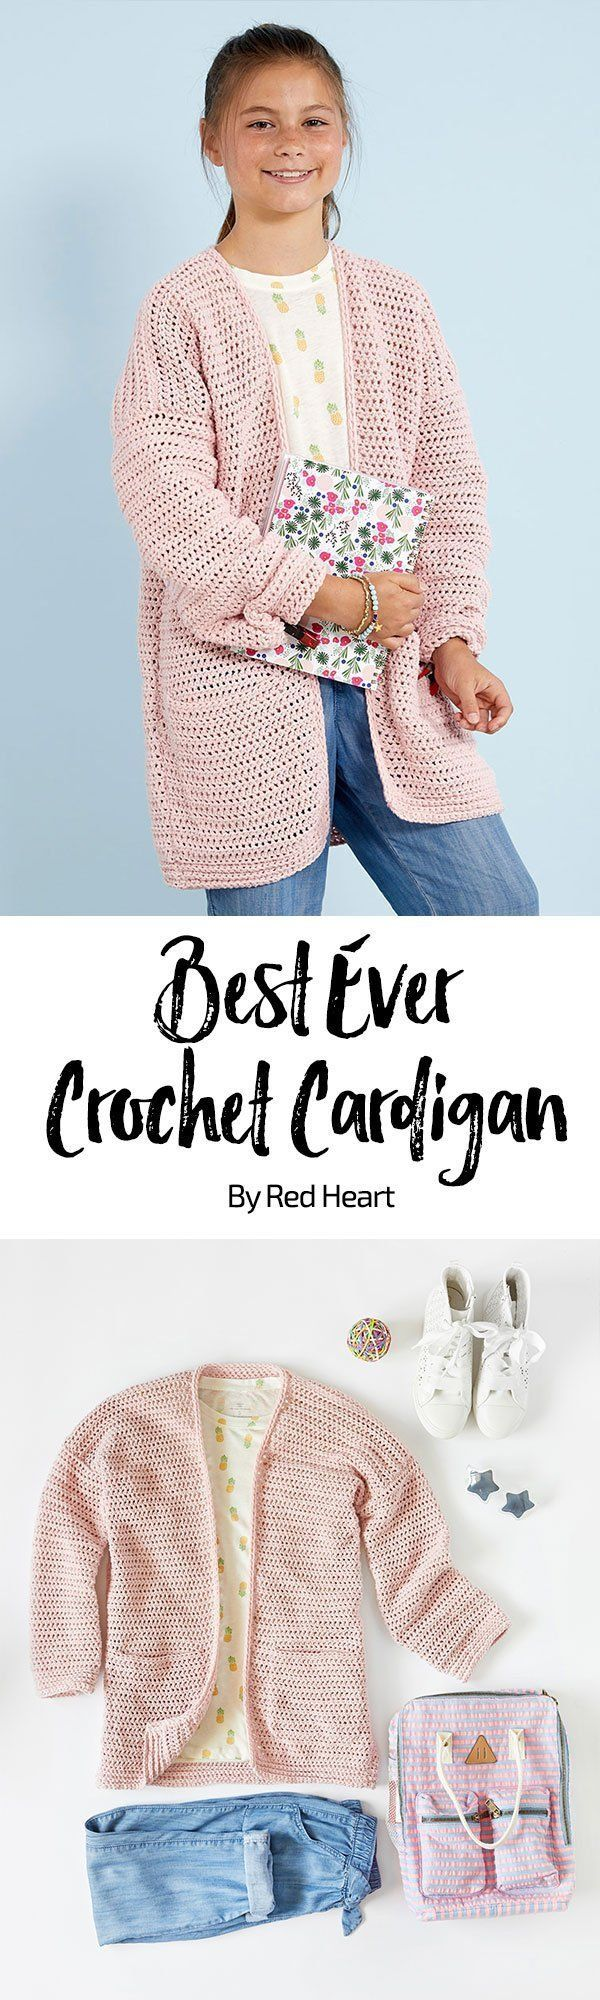 Best Crochet Cardigan Ever free crochet pattern in Amore yarn. This easy to crochet cardigan has a lot going for it! Smooth (not scratchy) yarn, a cool longer length and nifty pockets. Choose from a super array of colors in this amazing washable yarn.